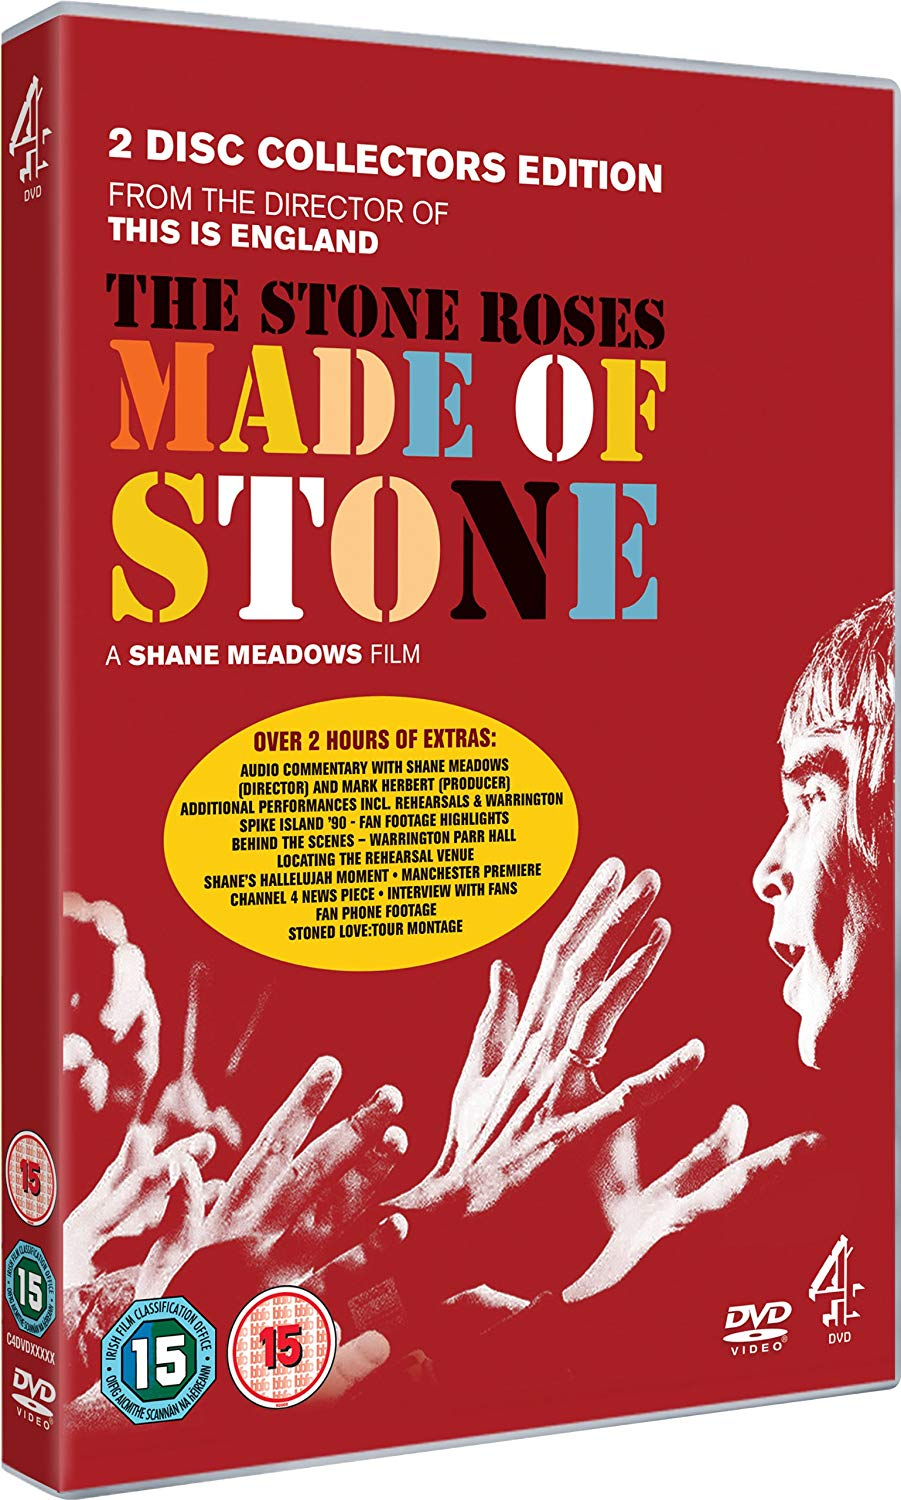 Buy The Stone Roses: Made of Stone